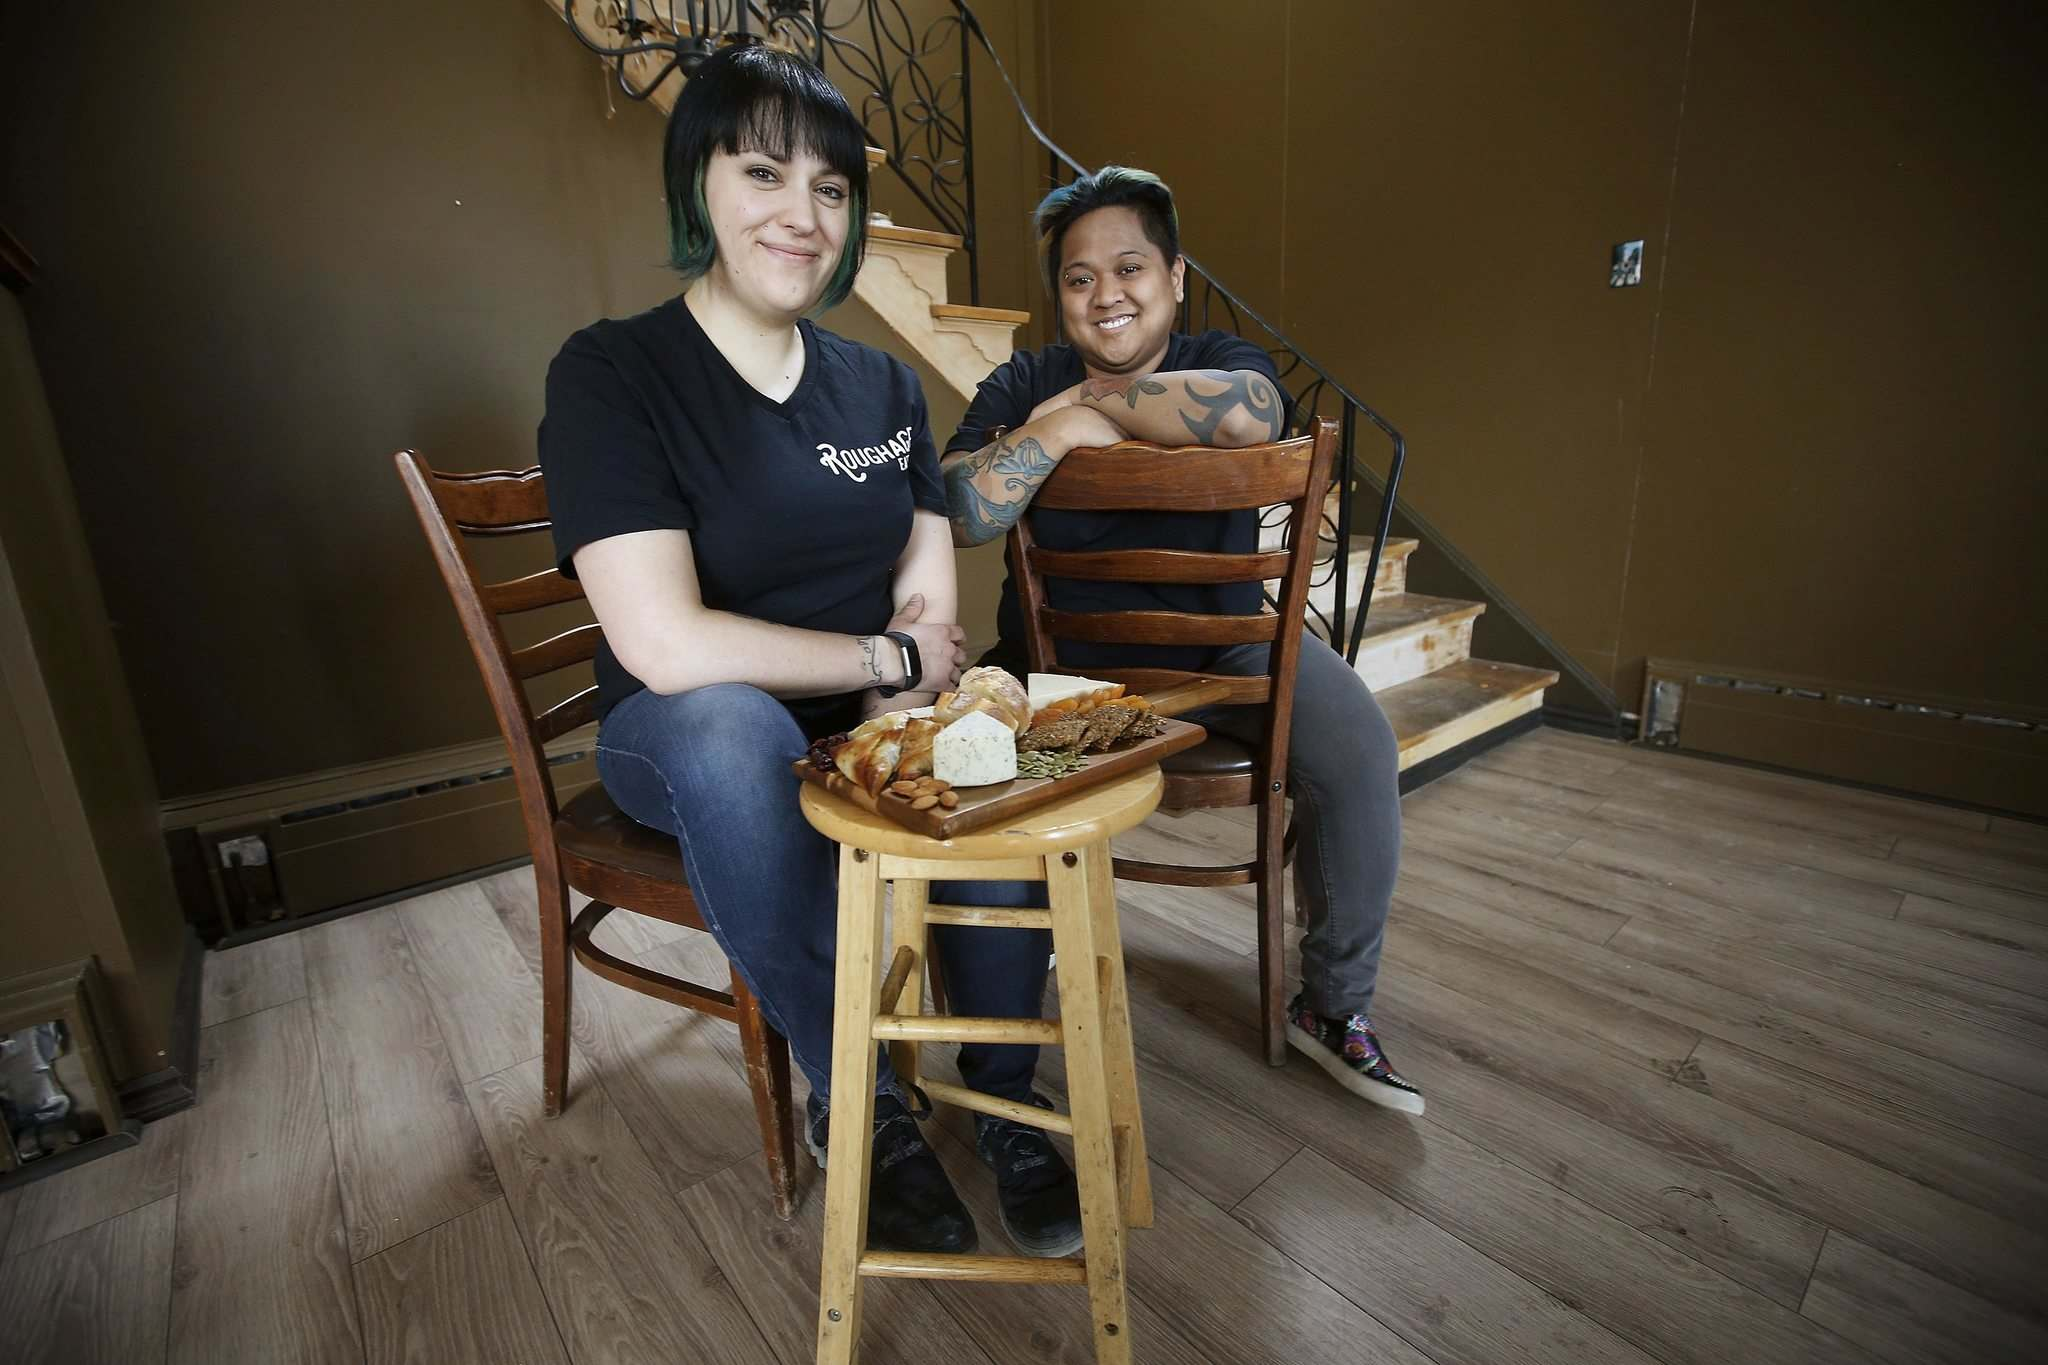 Jessie Hodel, left, and Candice Tonelete, co-owners of the new restaurant Roughage Eatery. (John Woods photos / Winnipeg Free Press)